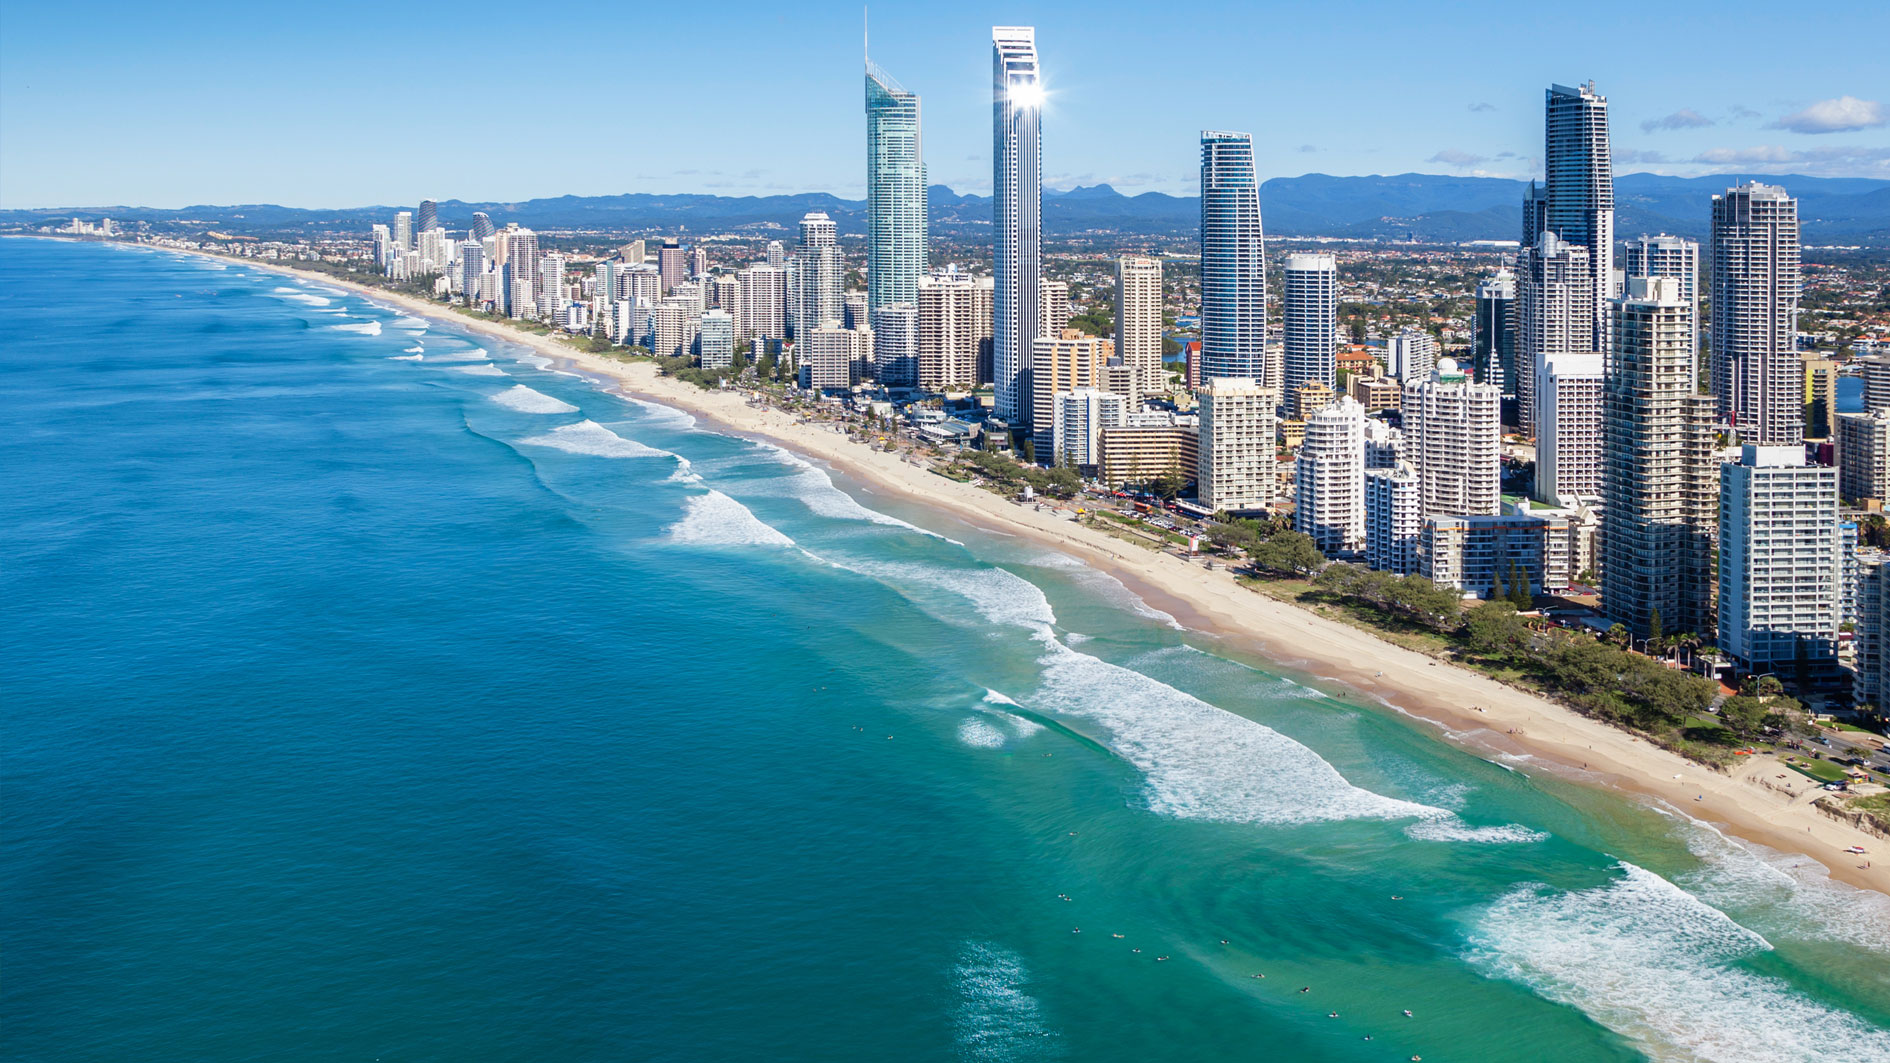 Gold Coast Surfer's Paradise beach on sunny day, Queensland